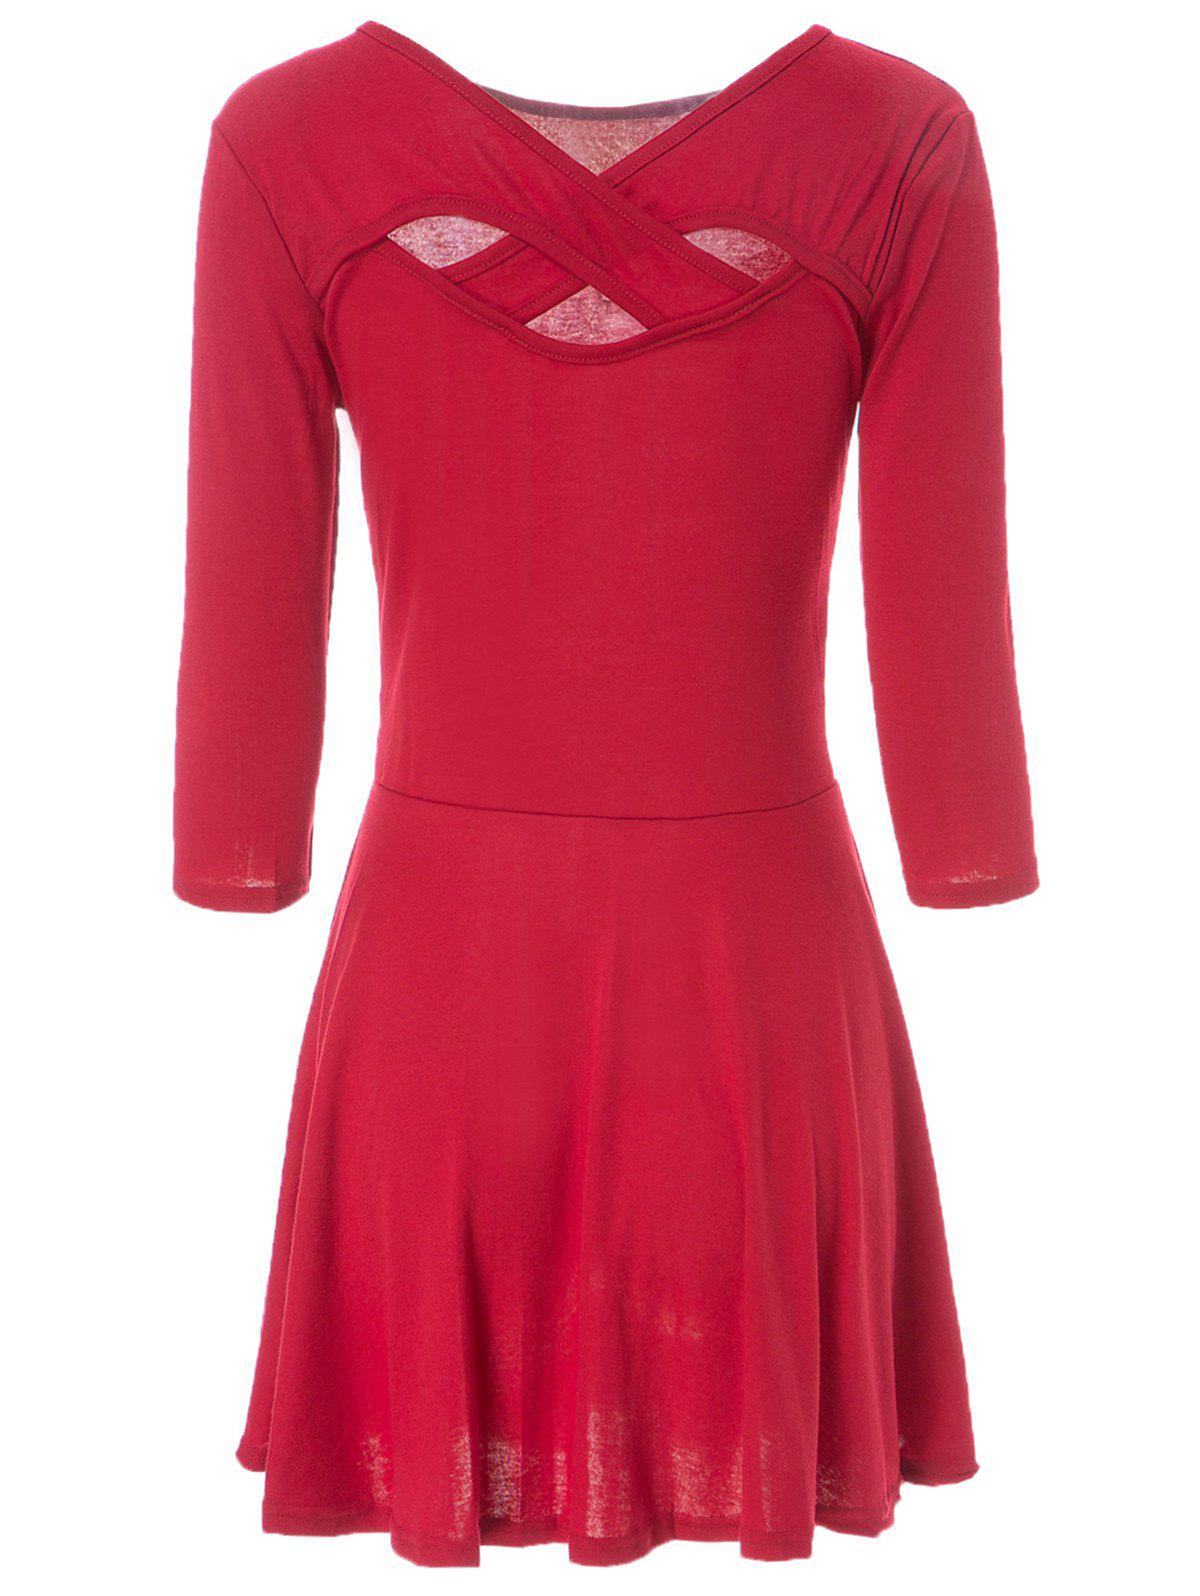 Simple V-Neck 3/4 Sleeve Solid Color Criss-Cross Hollow Out Women's Dress - WINE RED L